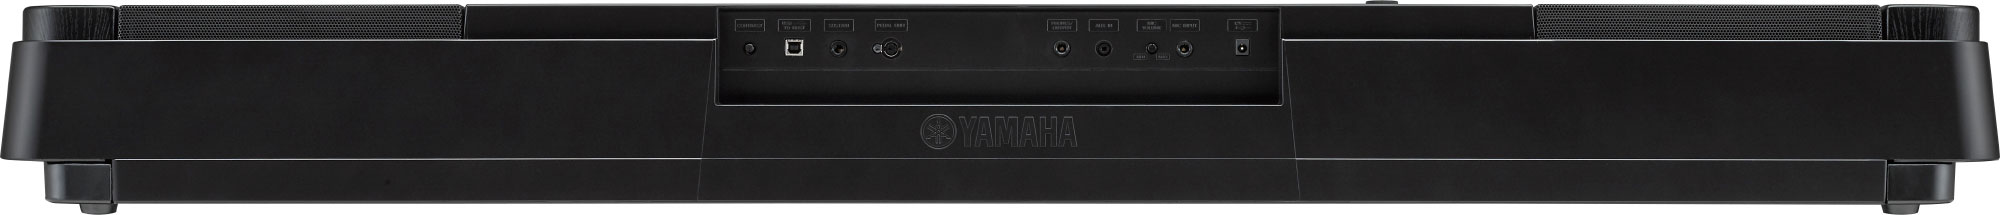 Yamaha DGX-660 back panel